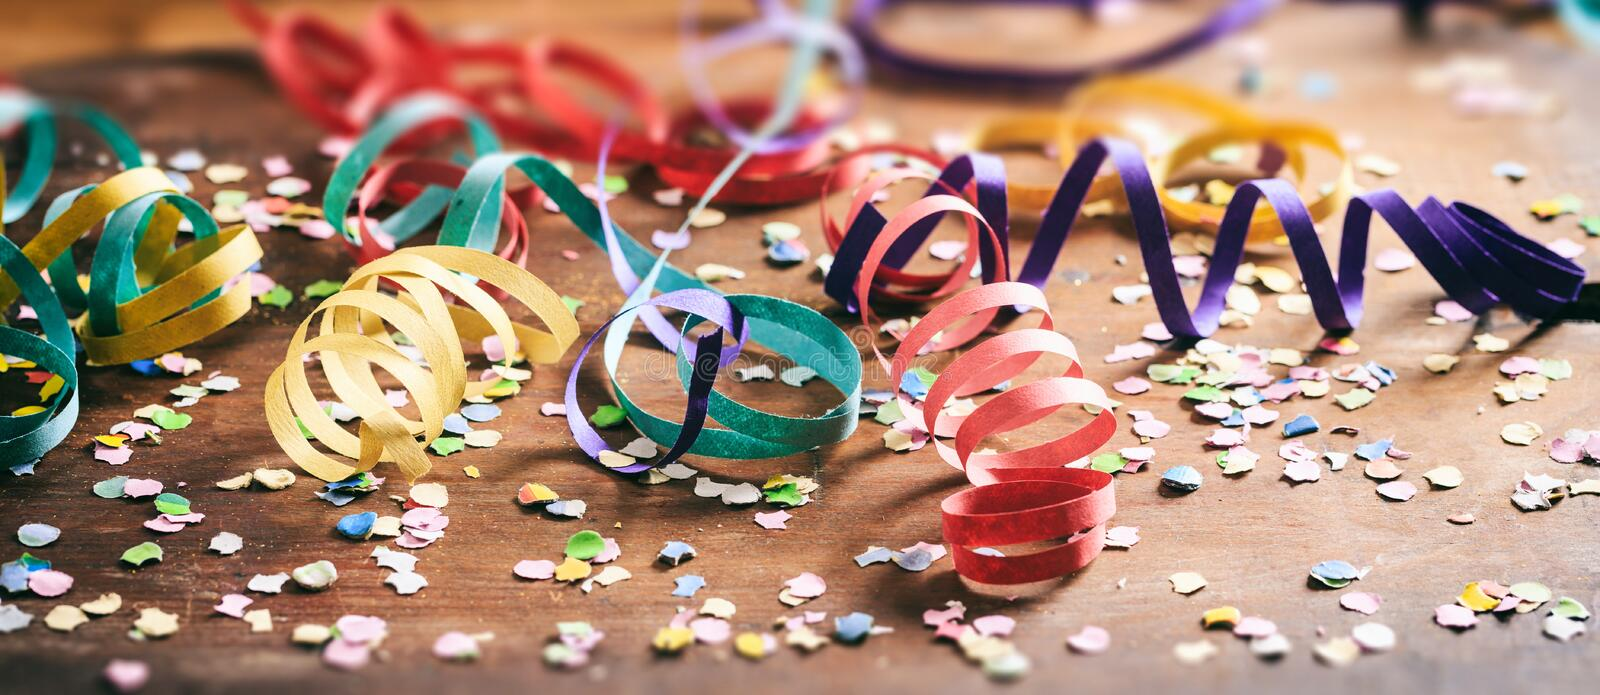 Colorful confetti and serpentines on wooden background. Carnival party. Colorful confetti and serpentines on wooden background royalty free stock photo